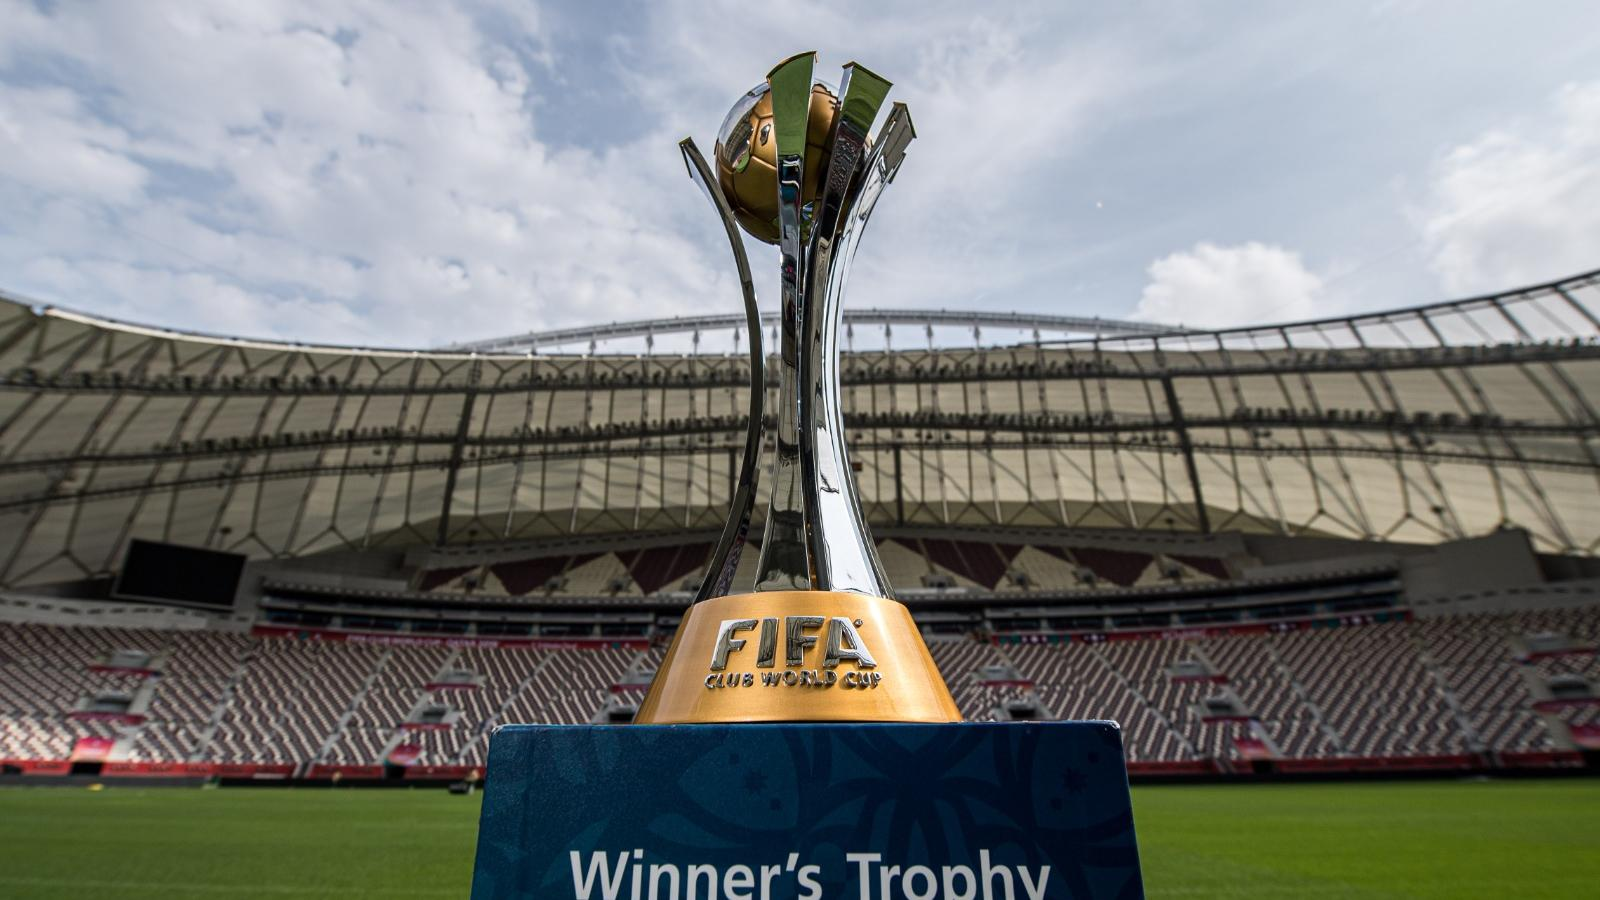 Visa Presale offers exclusive chance to purchase FIFA Club World Cup Qatar 2020 tickets